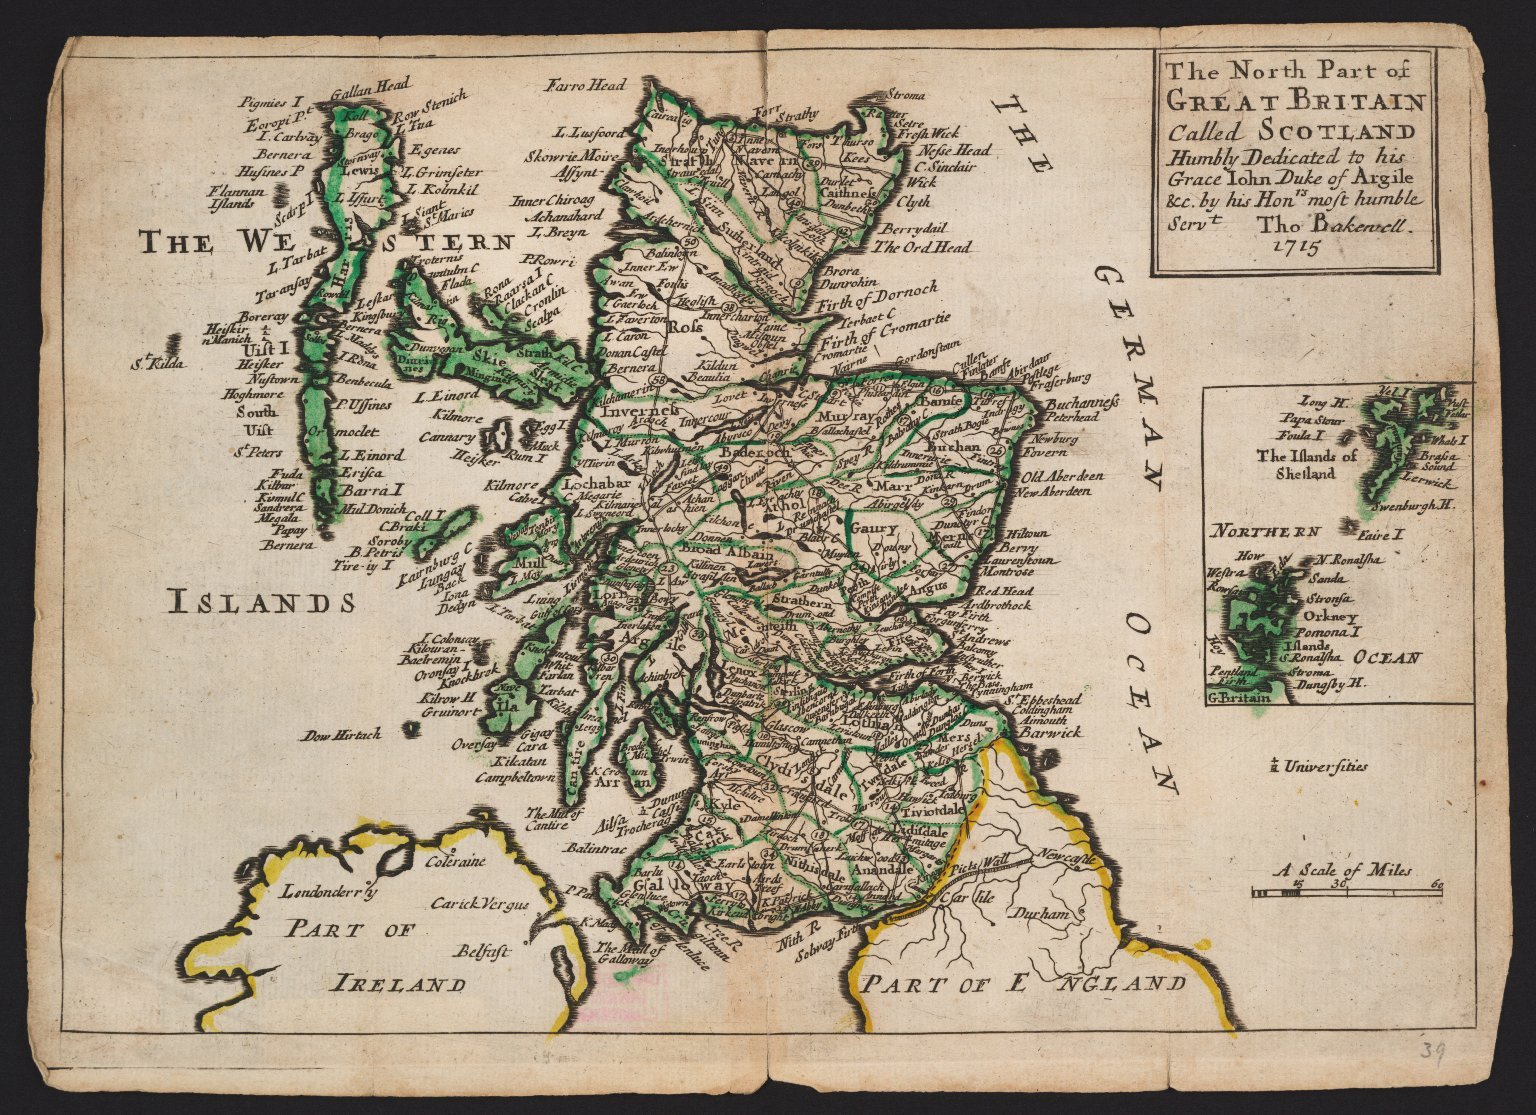 North Part of GREAT BRITAIN called SCOTLAND [1 of 1]